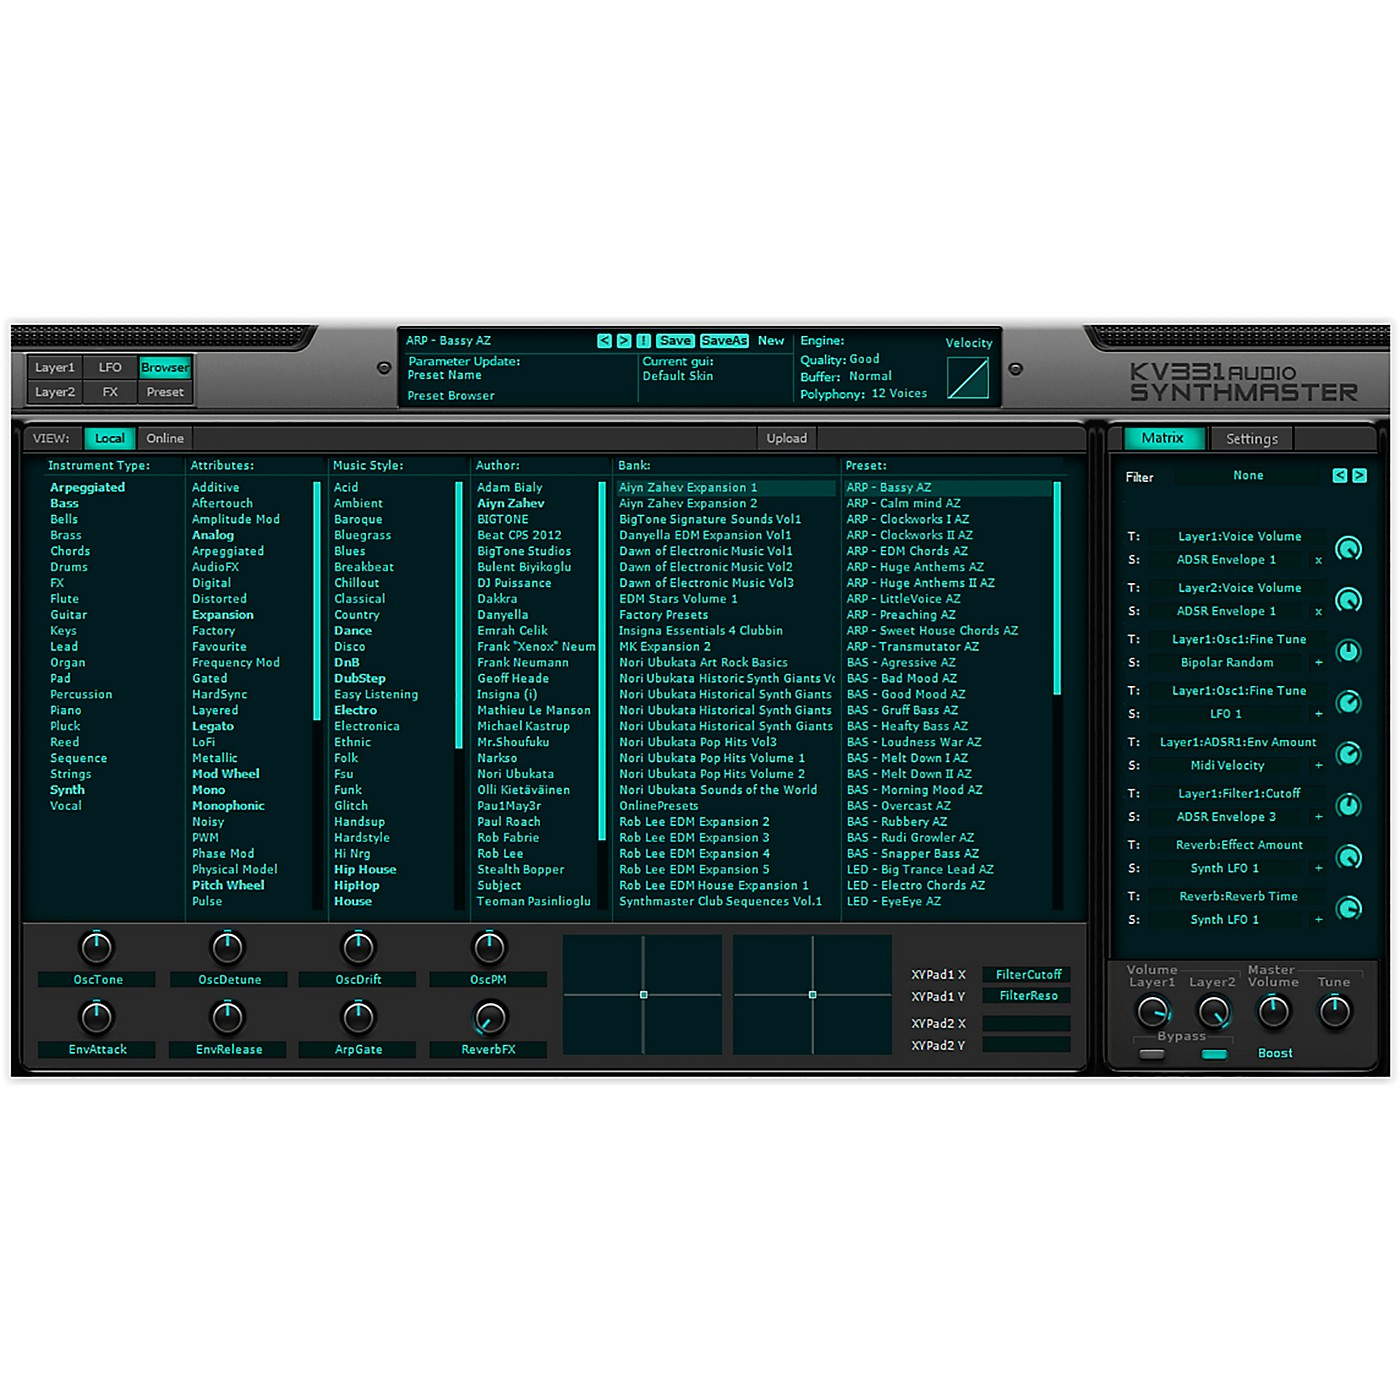 KV331 Audio Everything Bundle Upgrade From SynthMaster Player thumbnail